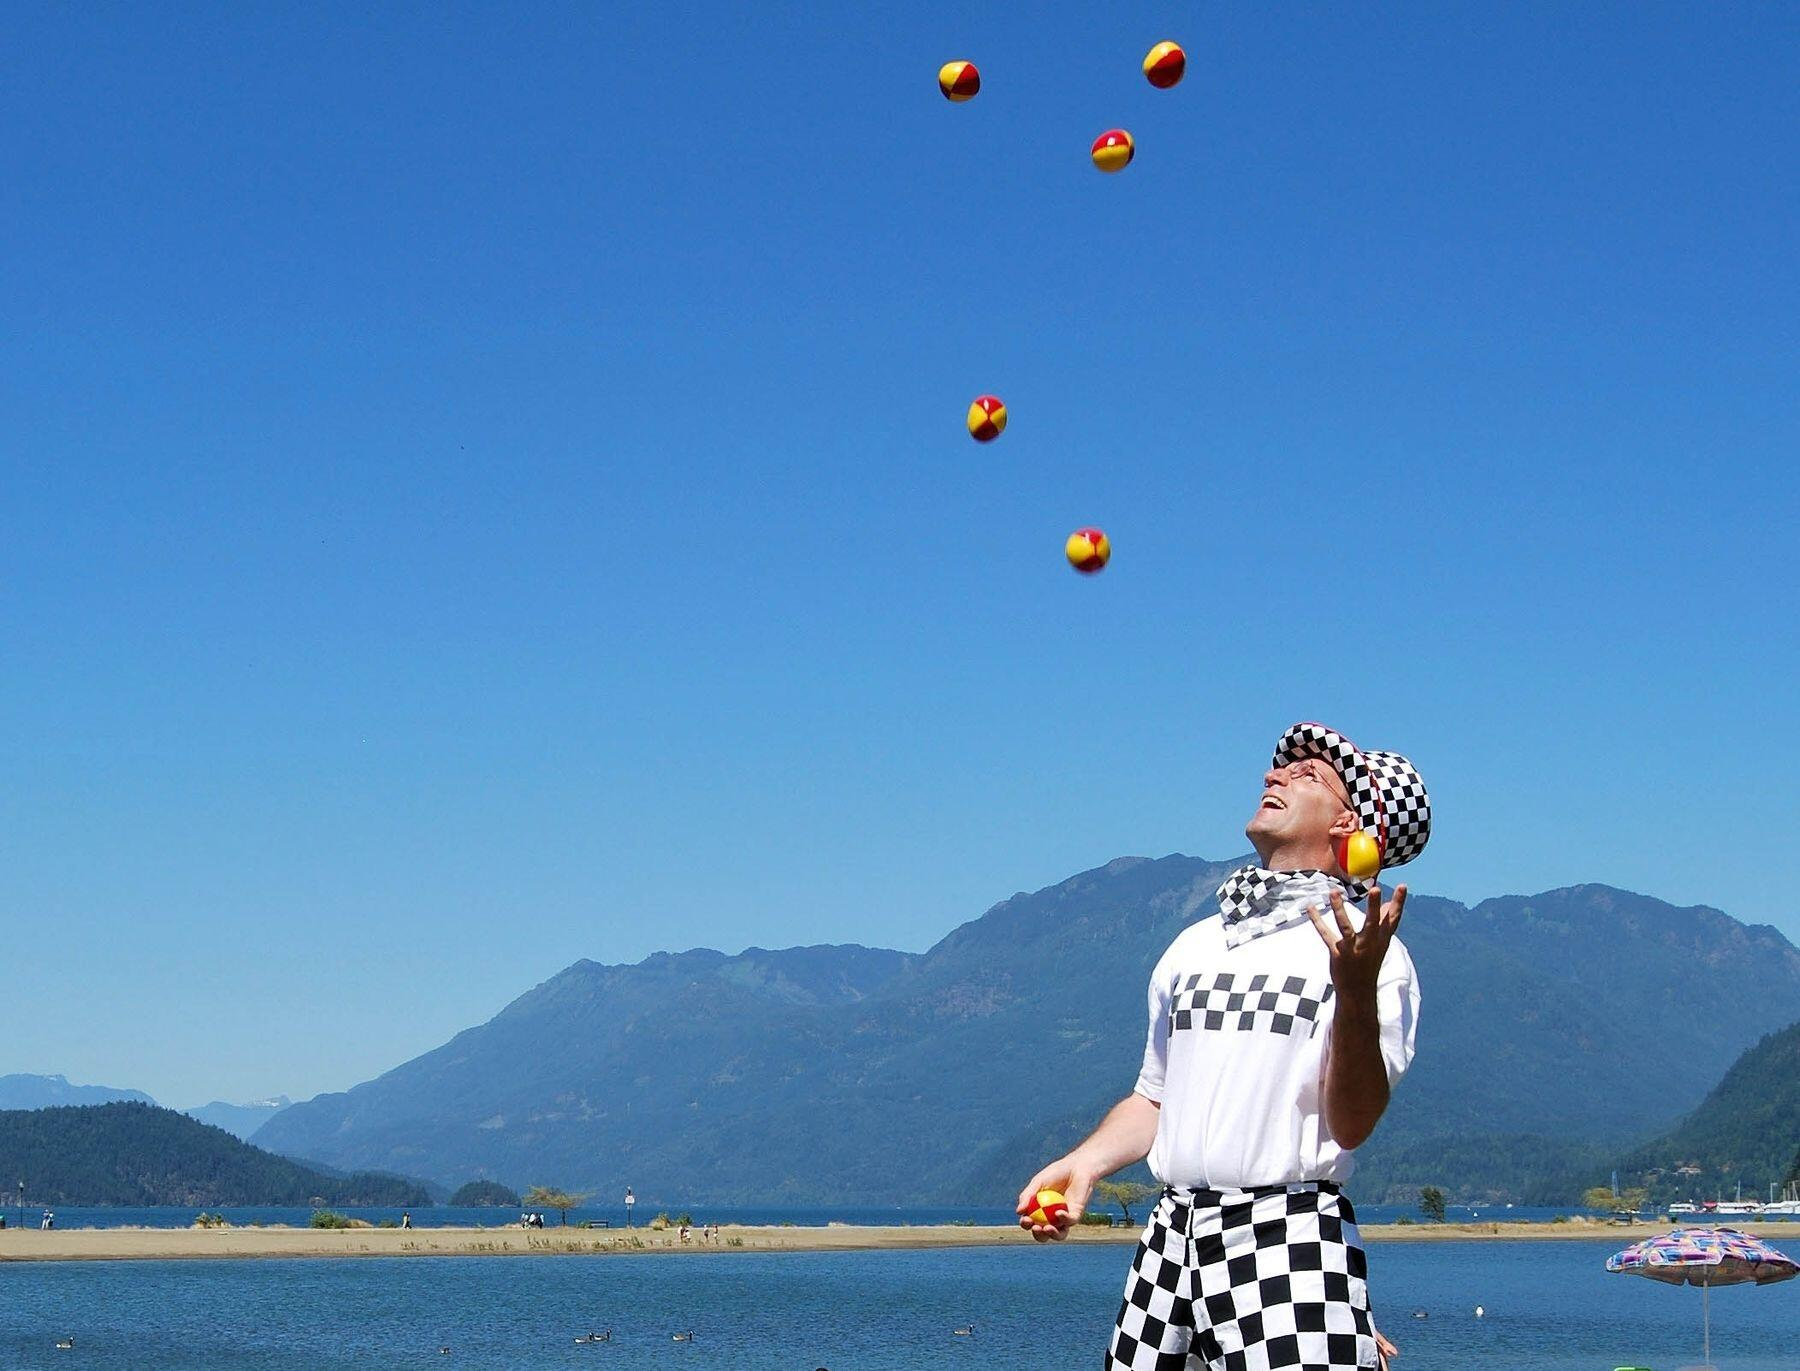 Man in checkerboard pants and hat juggling